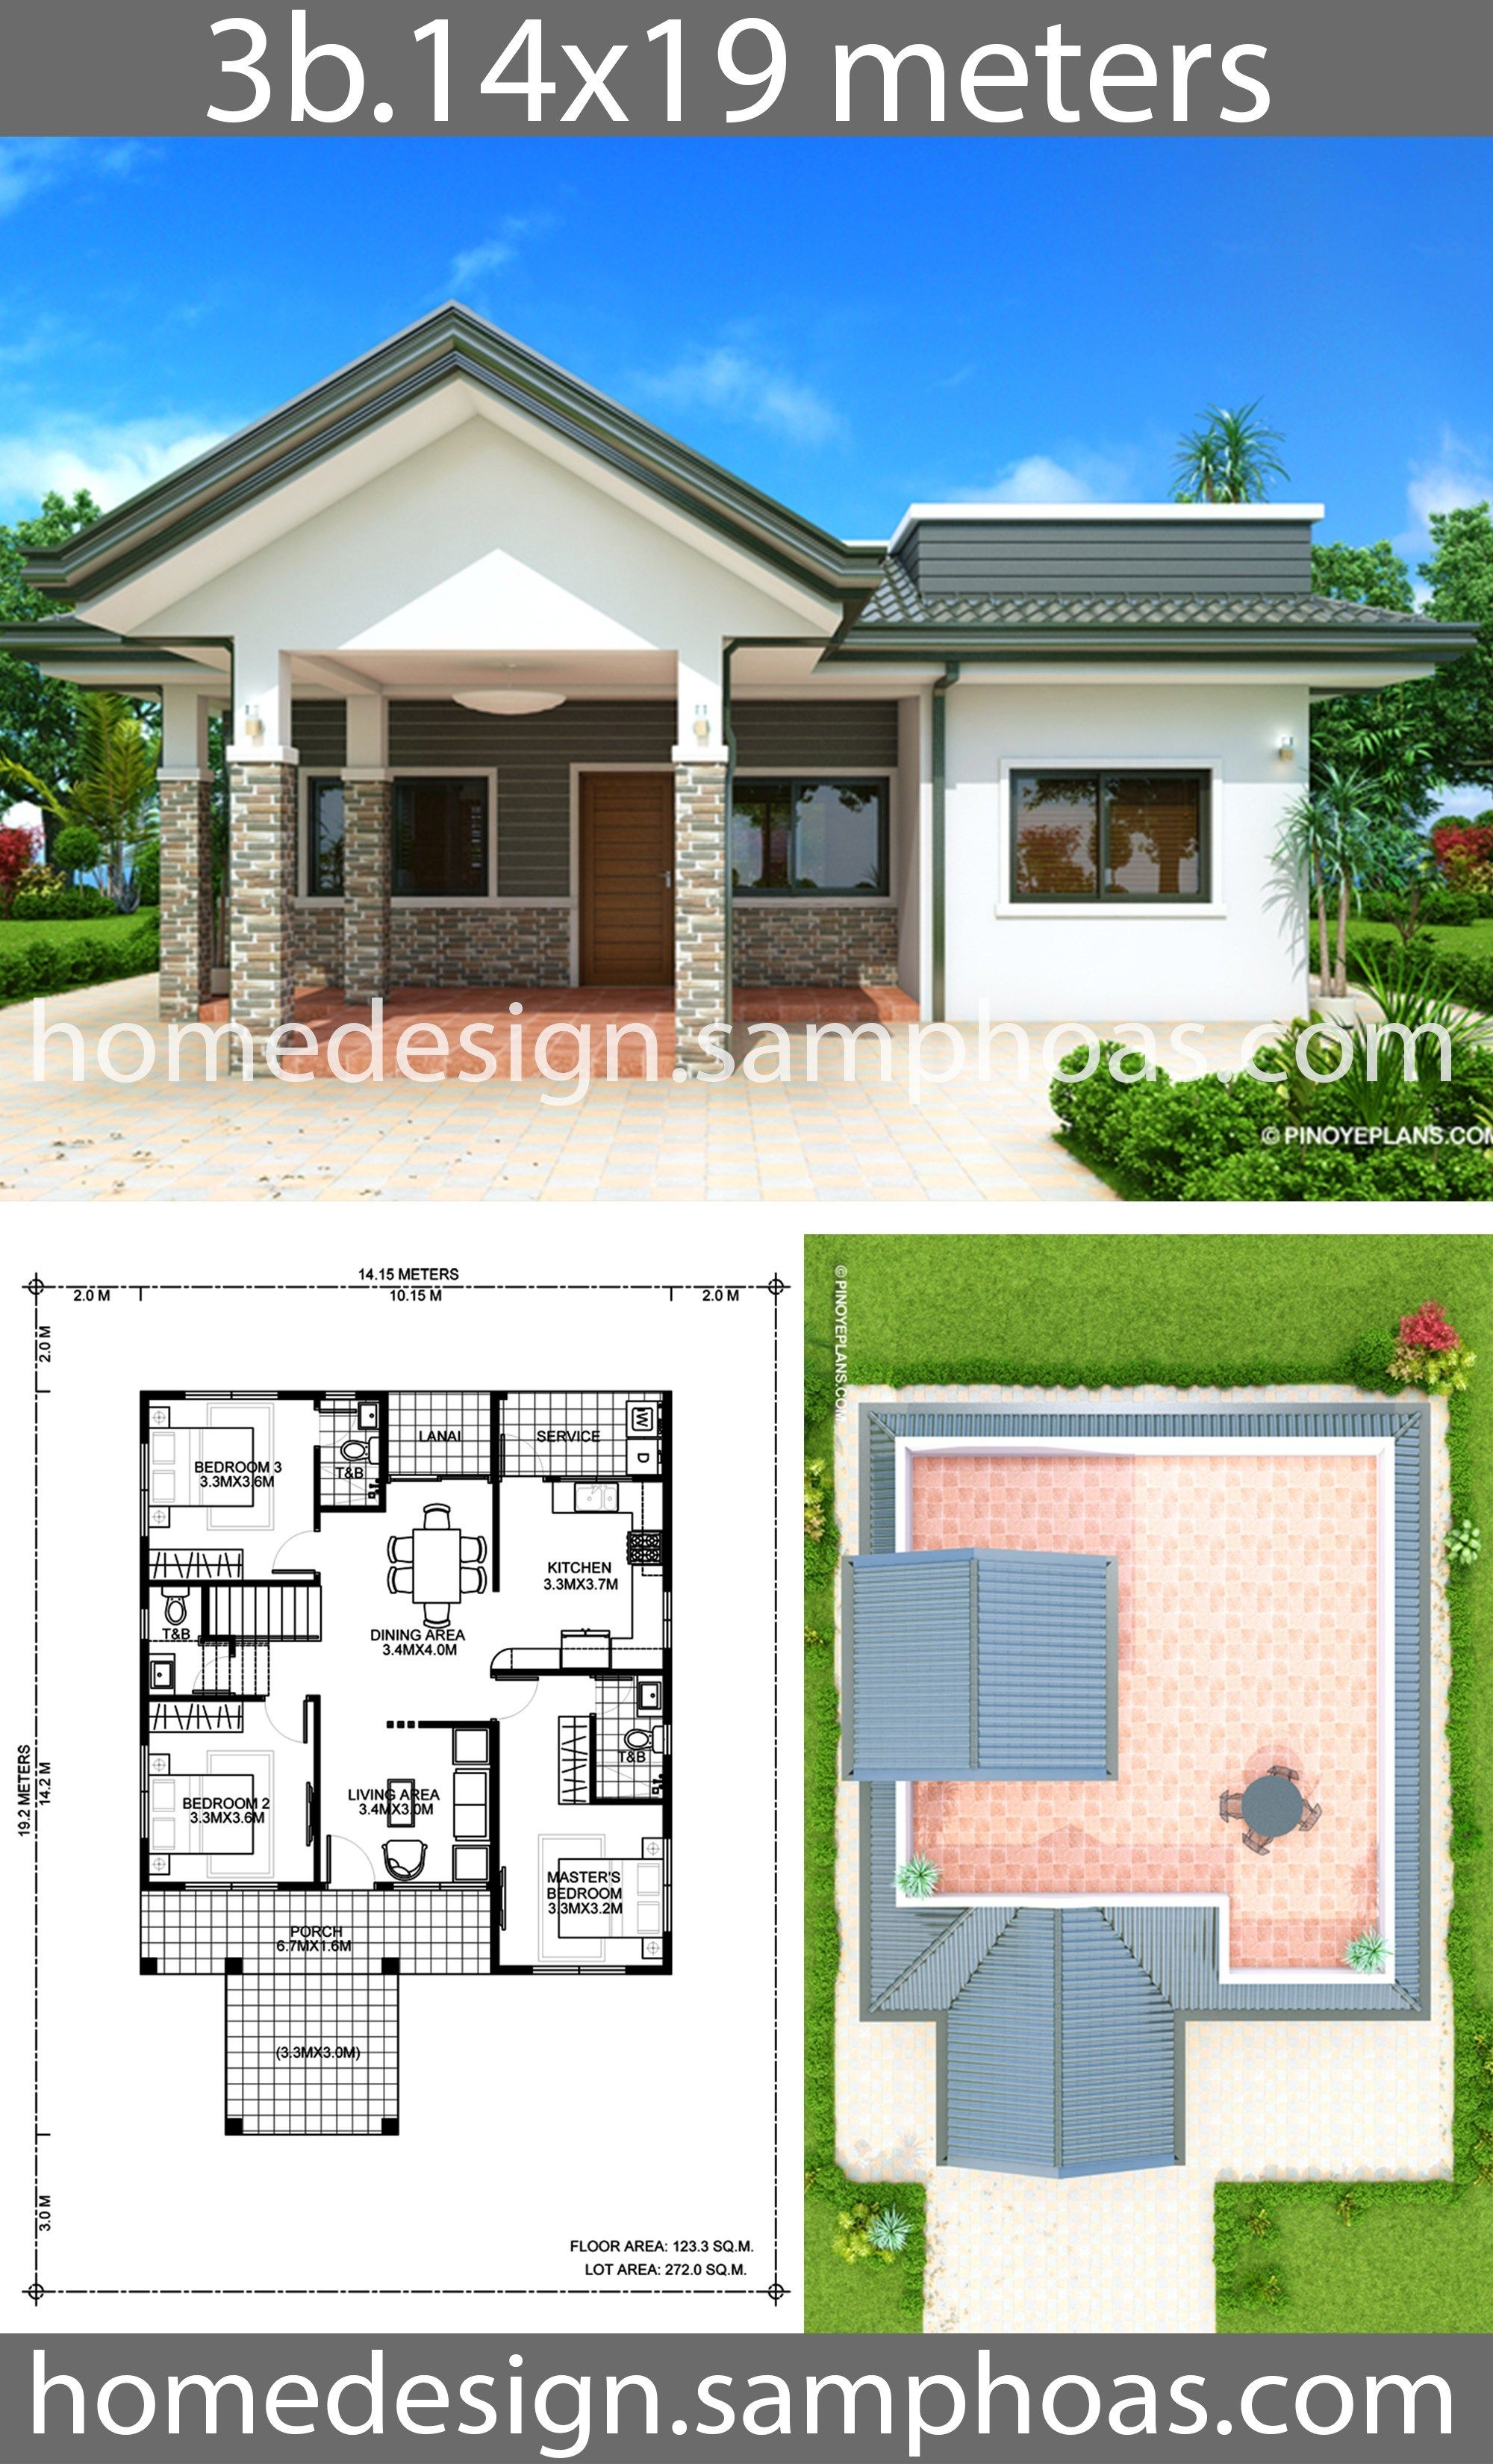 House Design Plans 14x19m With 3 Bedroom Style Modern Terrace Slaphouse Description Ground Level 3 Bedro Beautiful House Plans House Design Home Design Plans